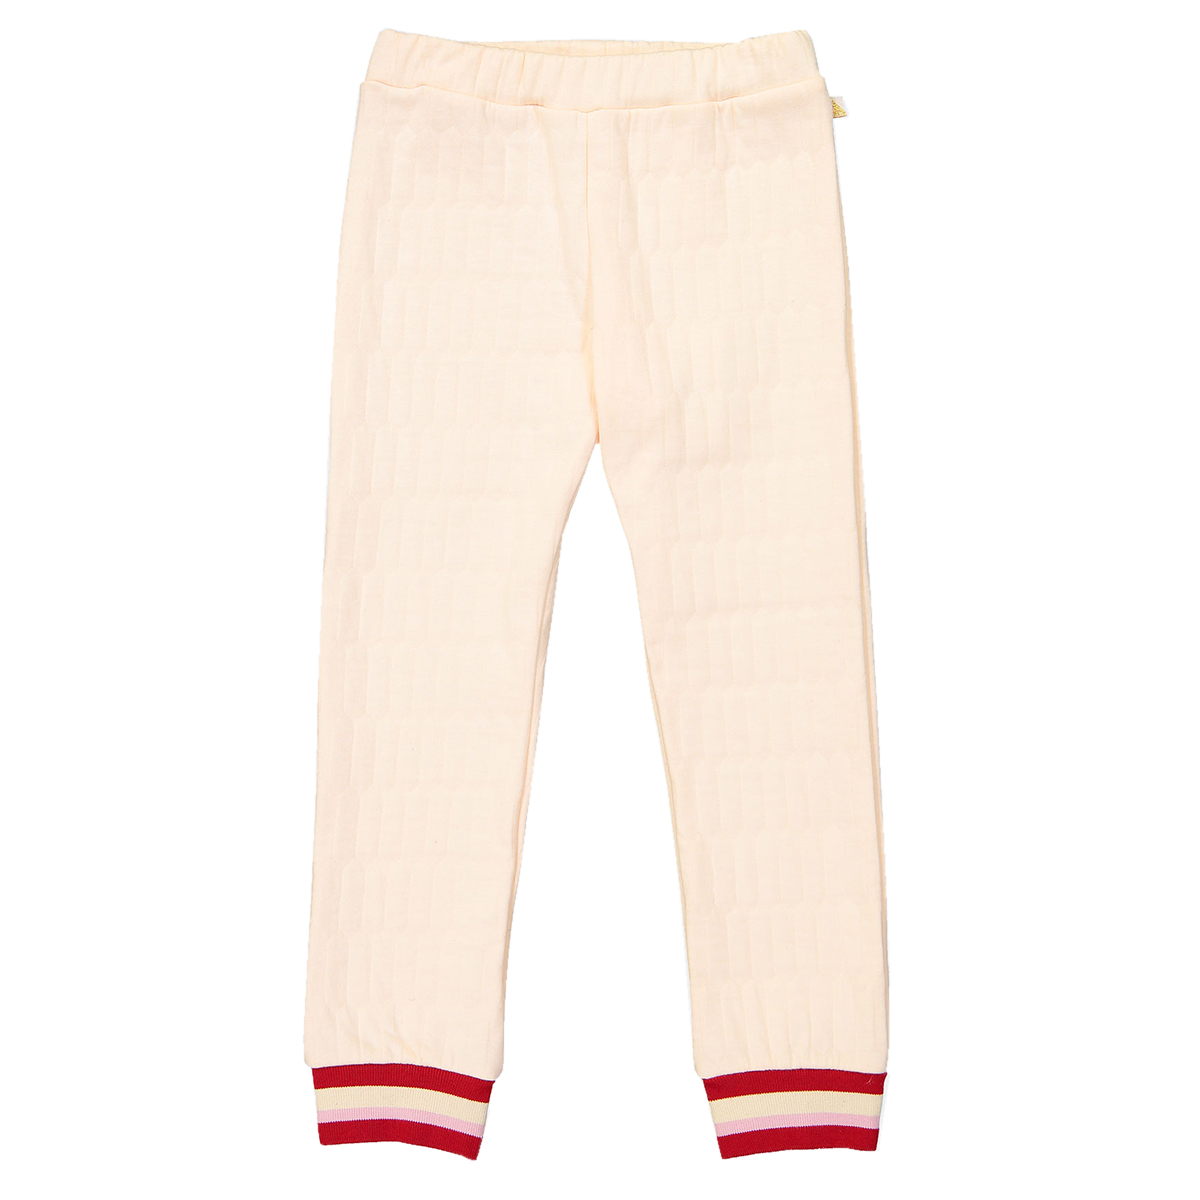 Blune Backstage Pant in Powder with Red